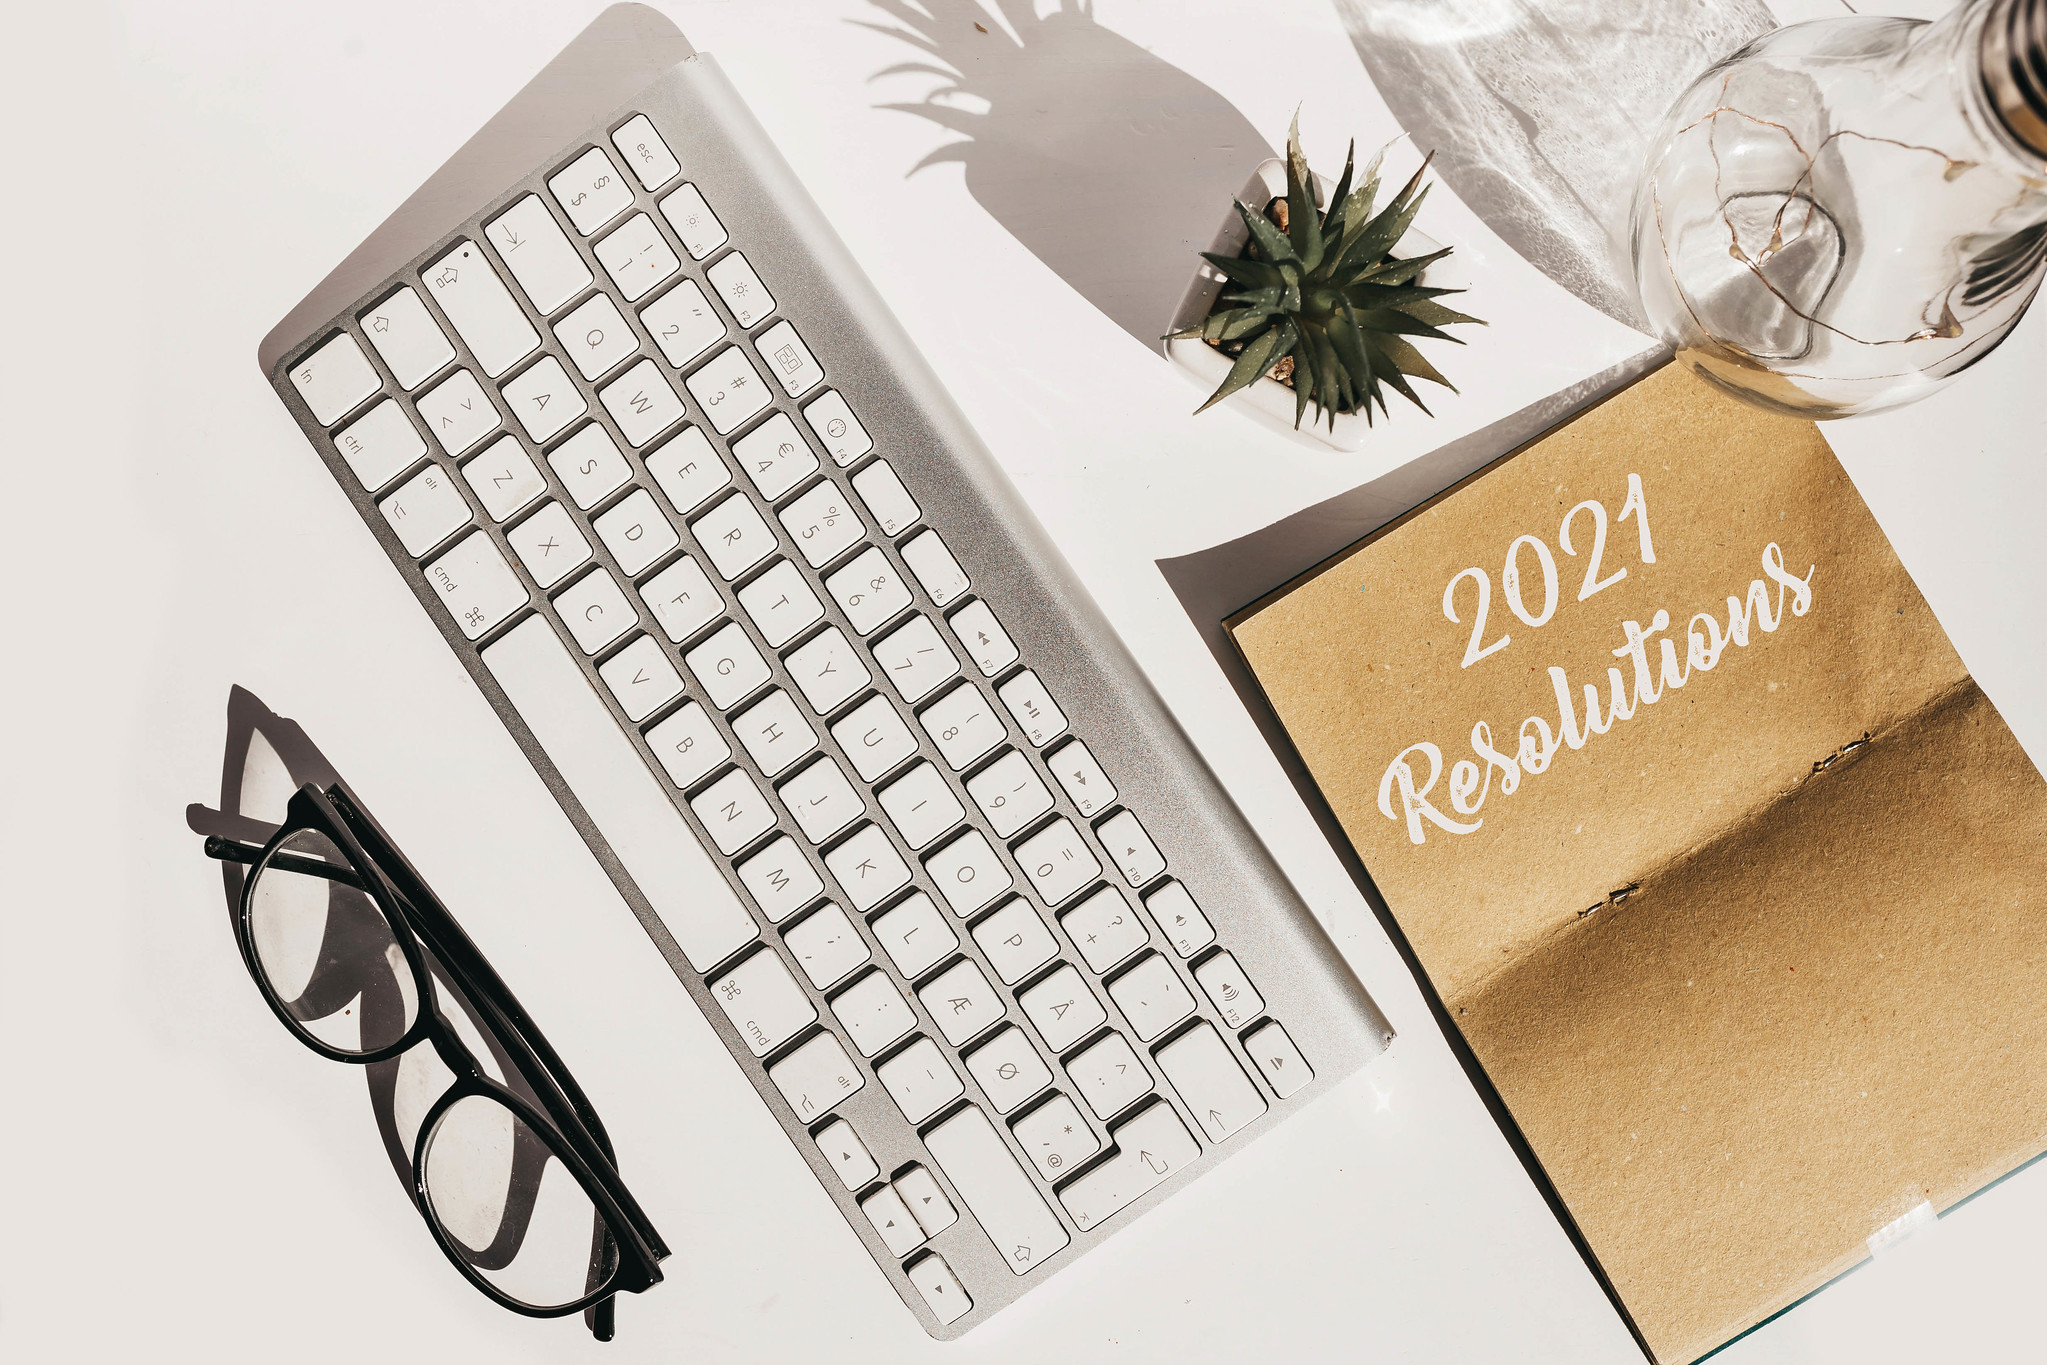 The Most Common New Years Resolutions For 2021